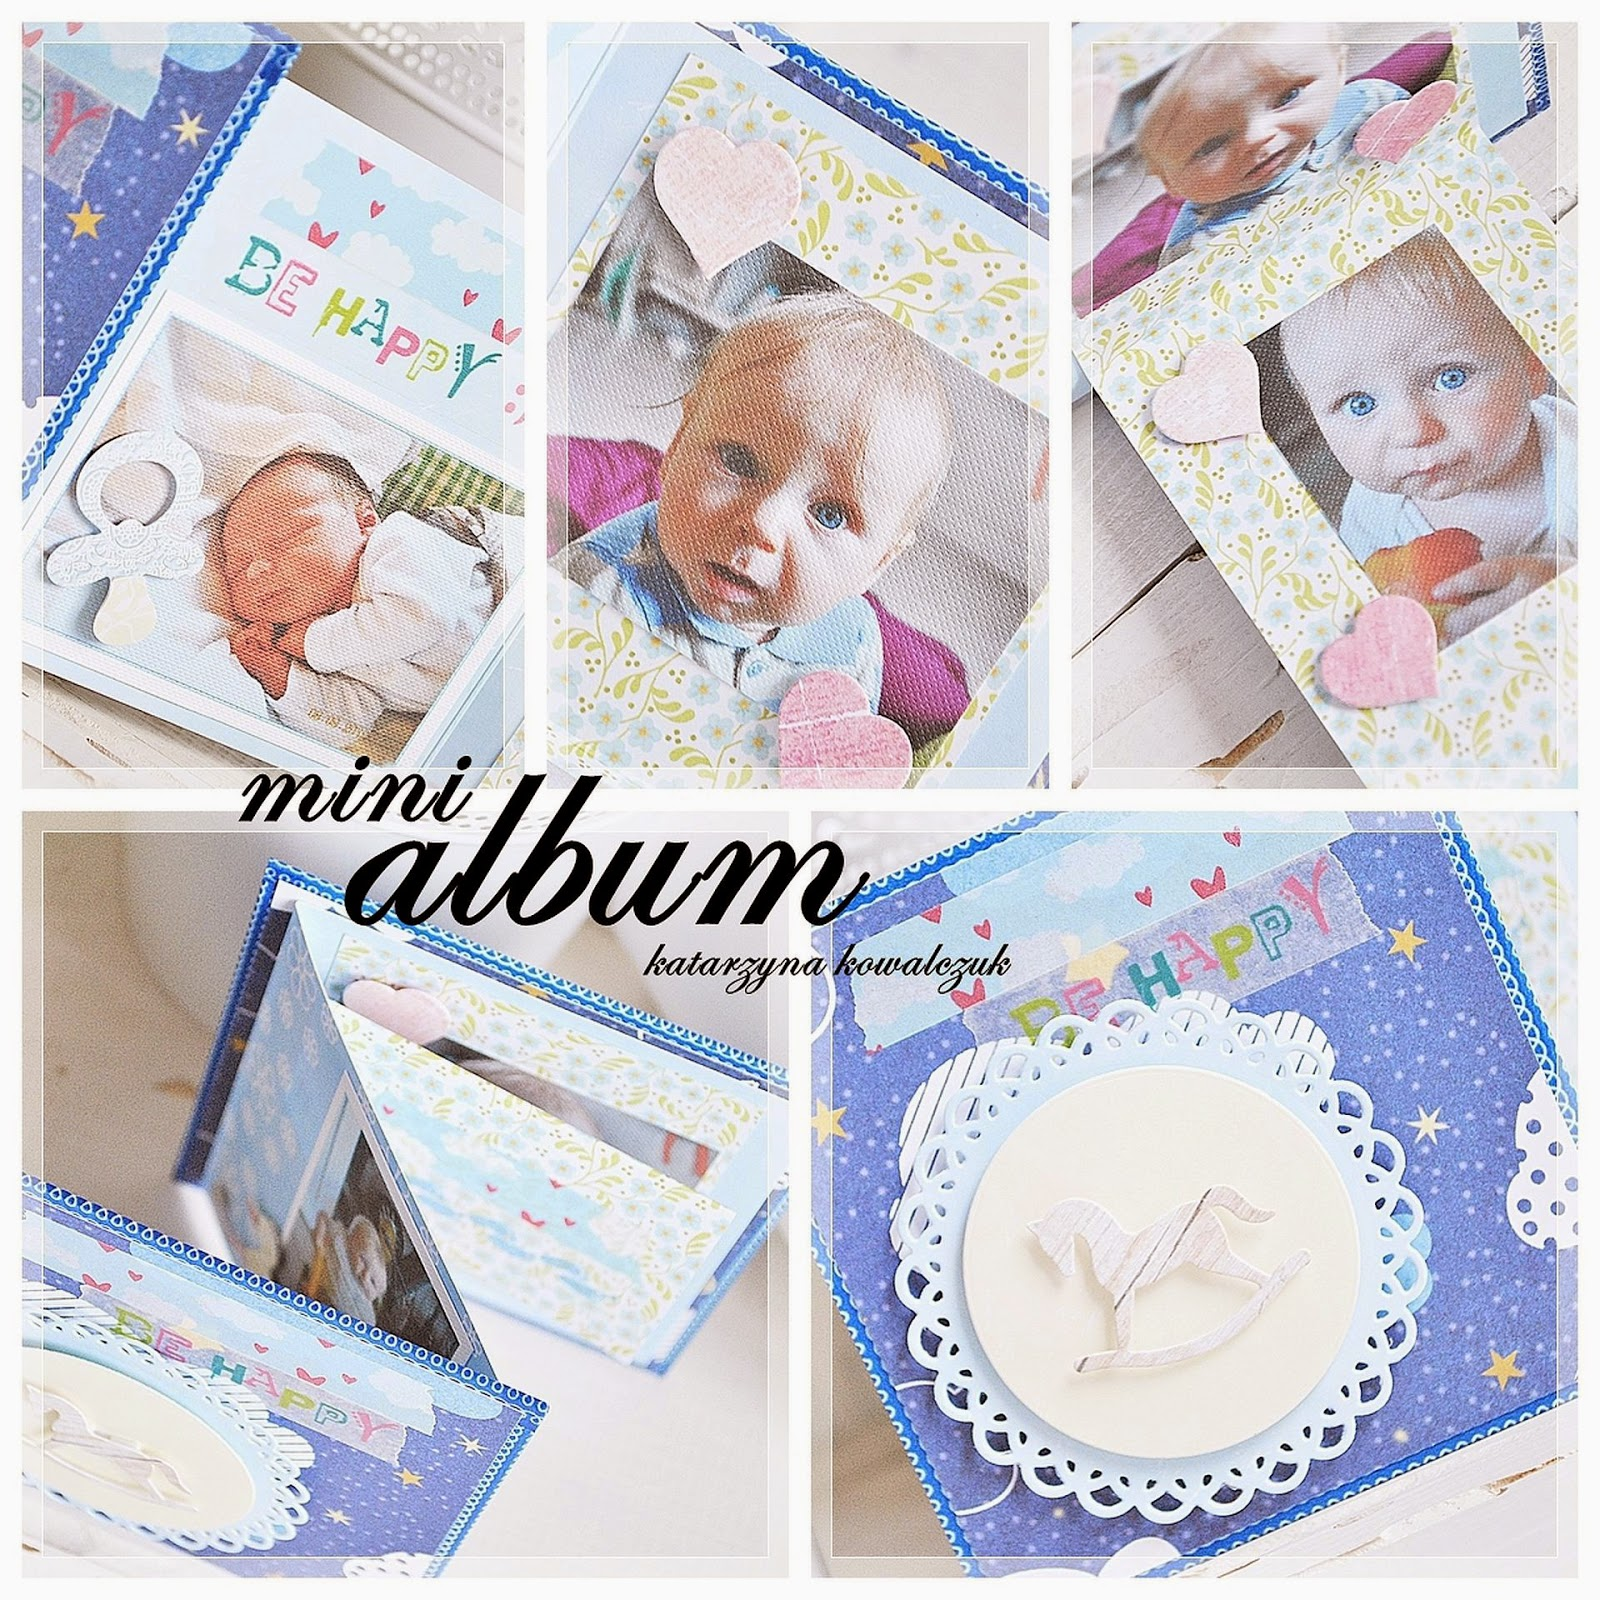 mini album scrapbooking